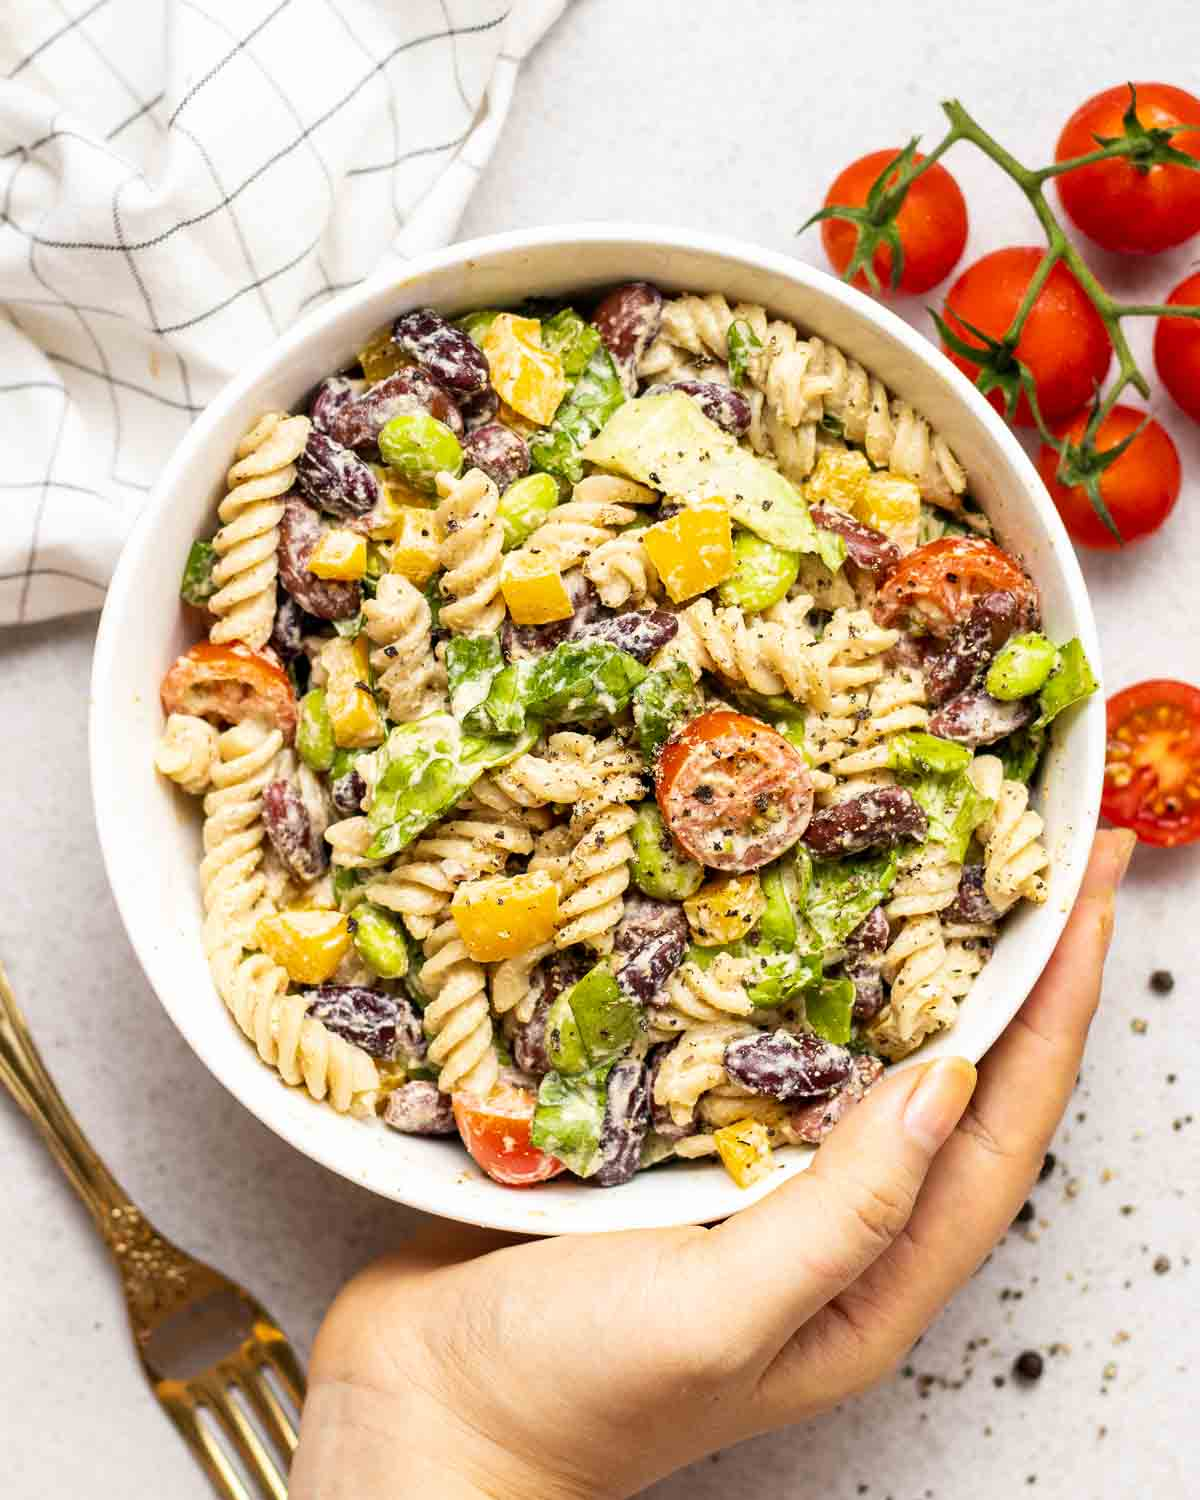 A hand holding a bowl of pasta salad.